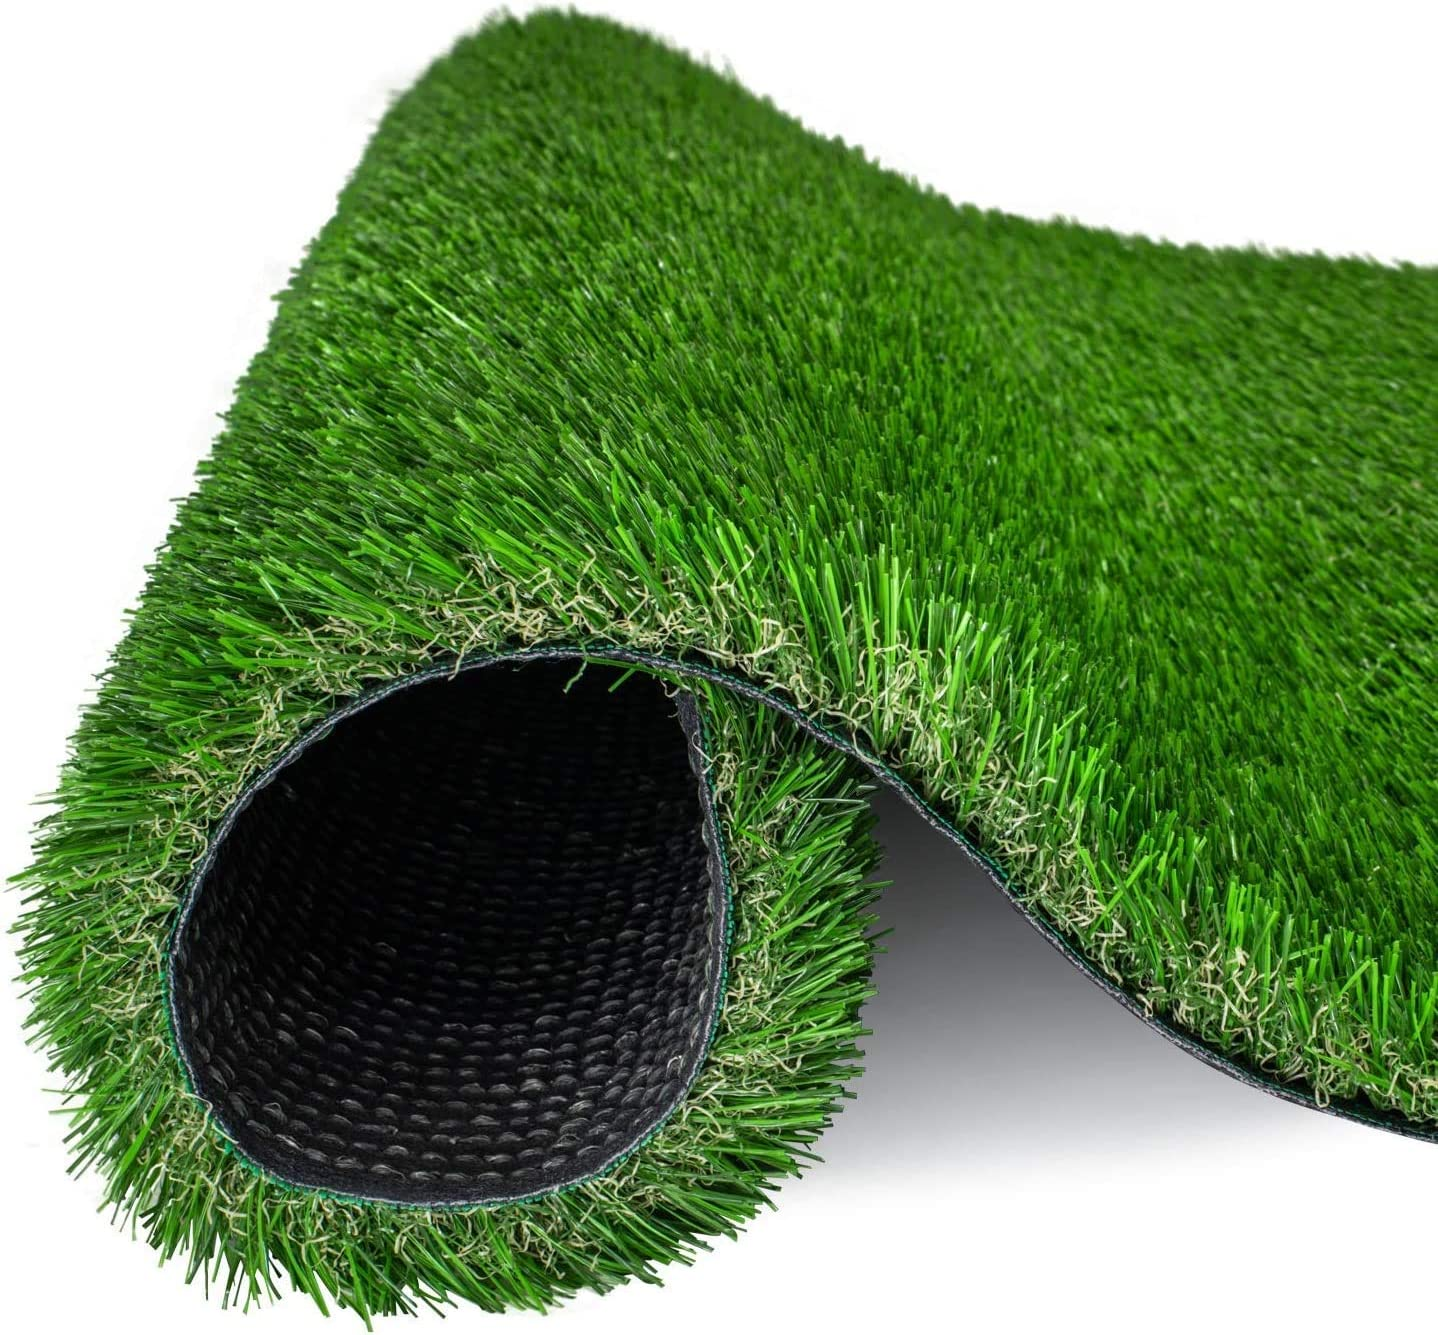 Artificial Grass Turf Realistic Lawn for Indoor Outdoor Pets Garden Mats Playground Great Drainage with UV Protection 1 Inch Pile Height (Sample)